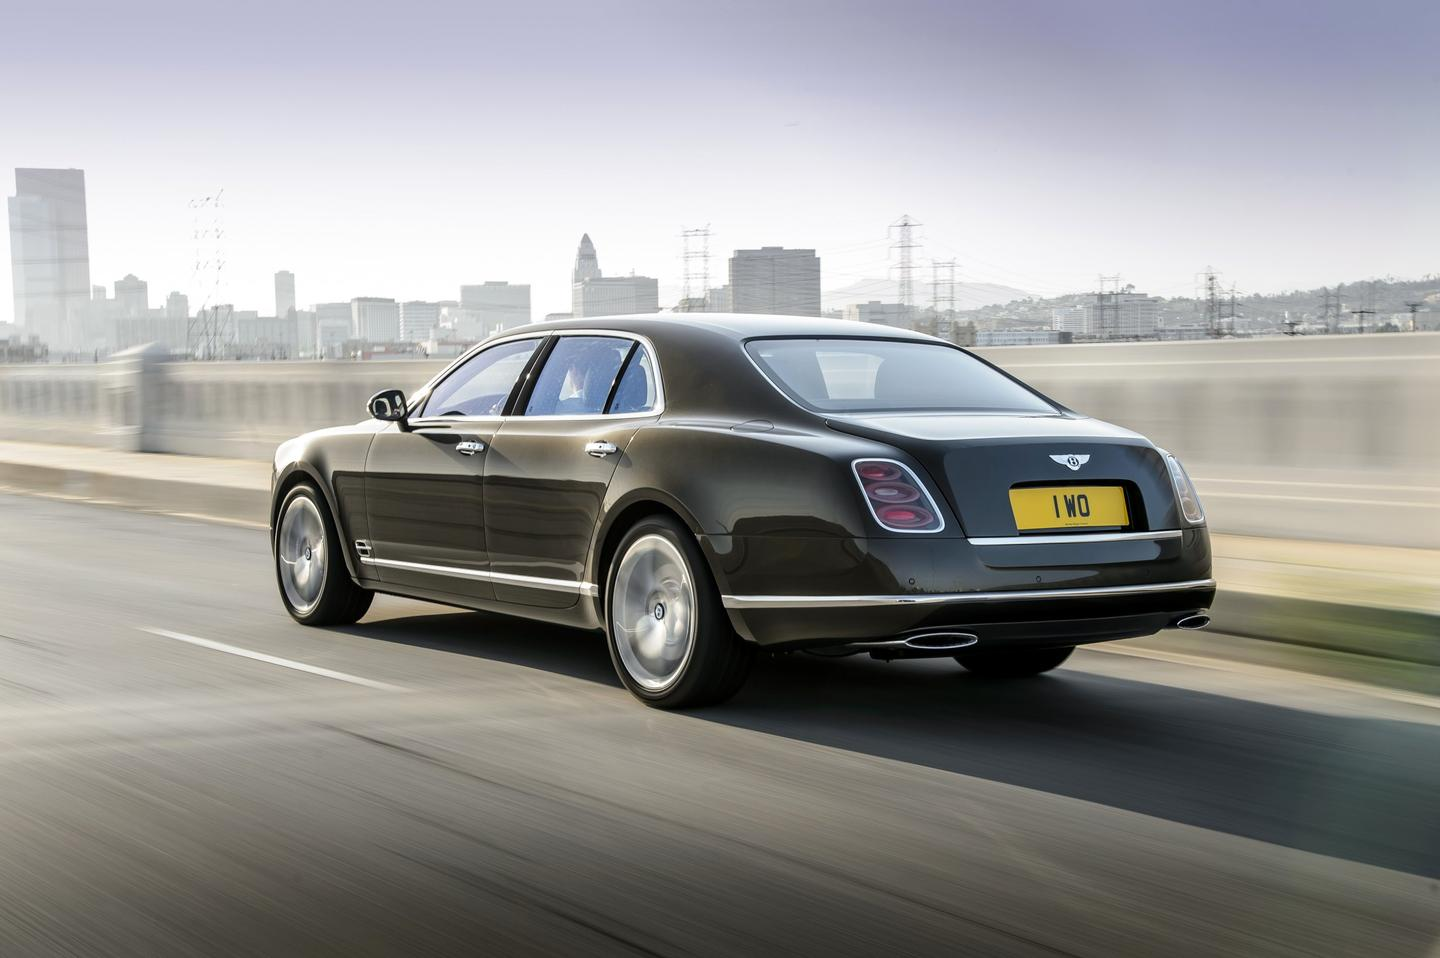 The new Mulsanne Speed is capable of hitting a top speed of 190 mph (305 km/h)